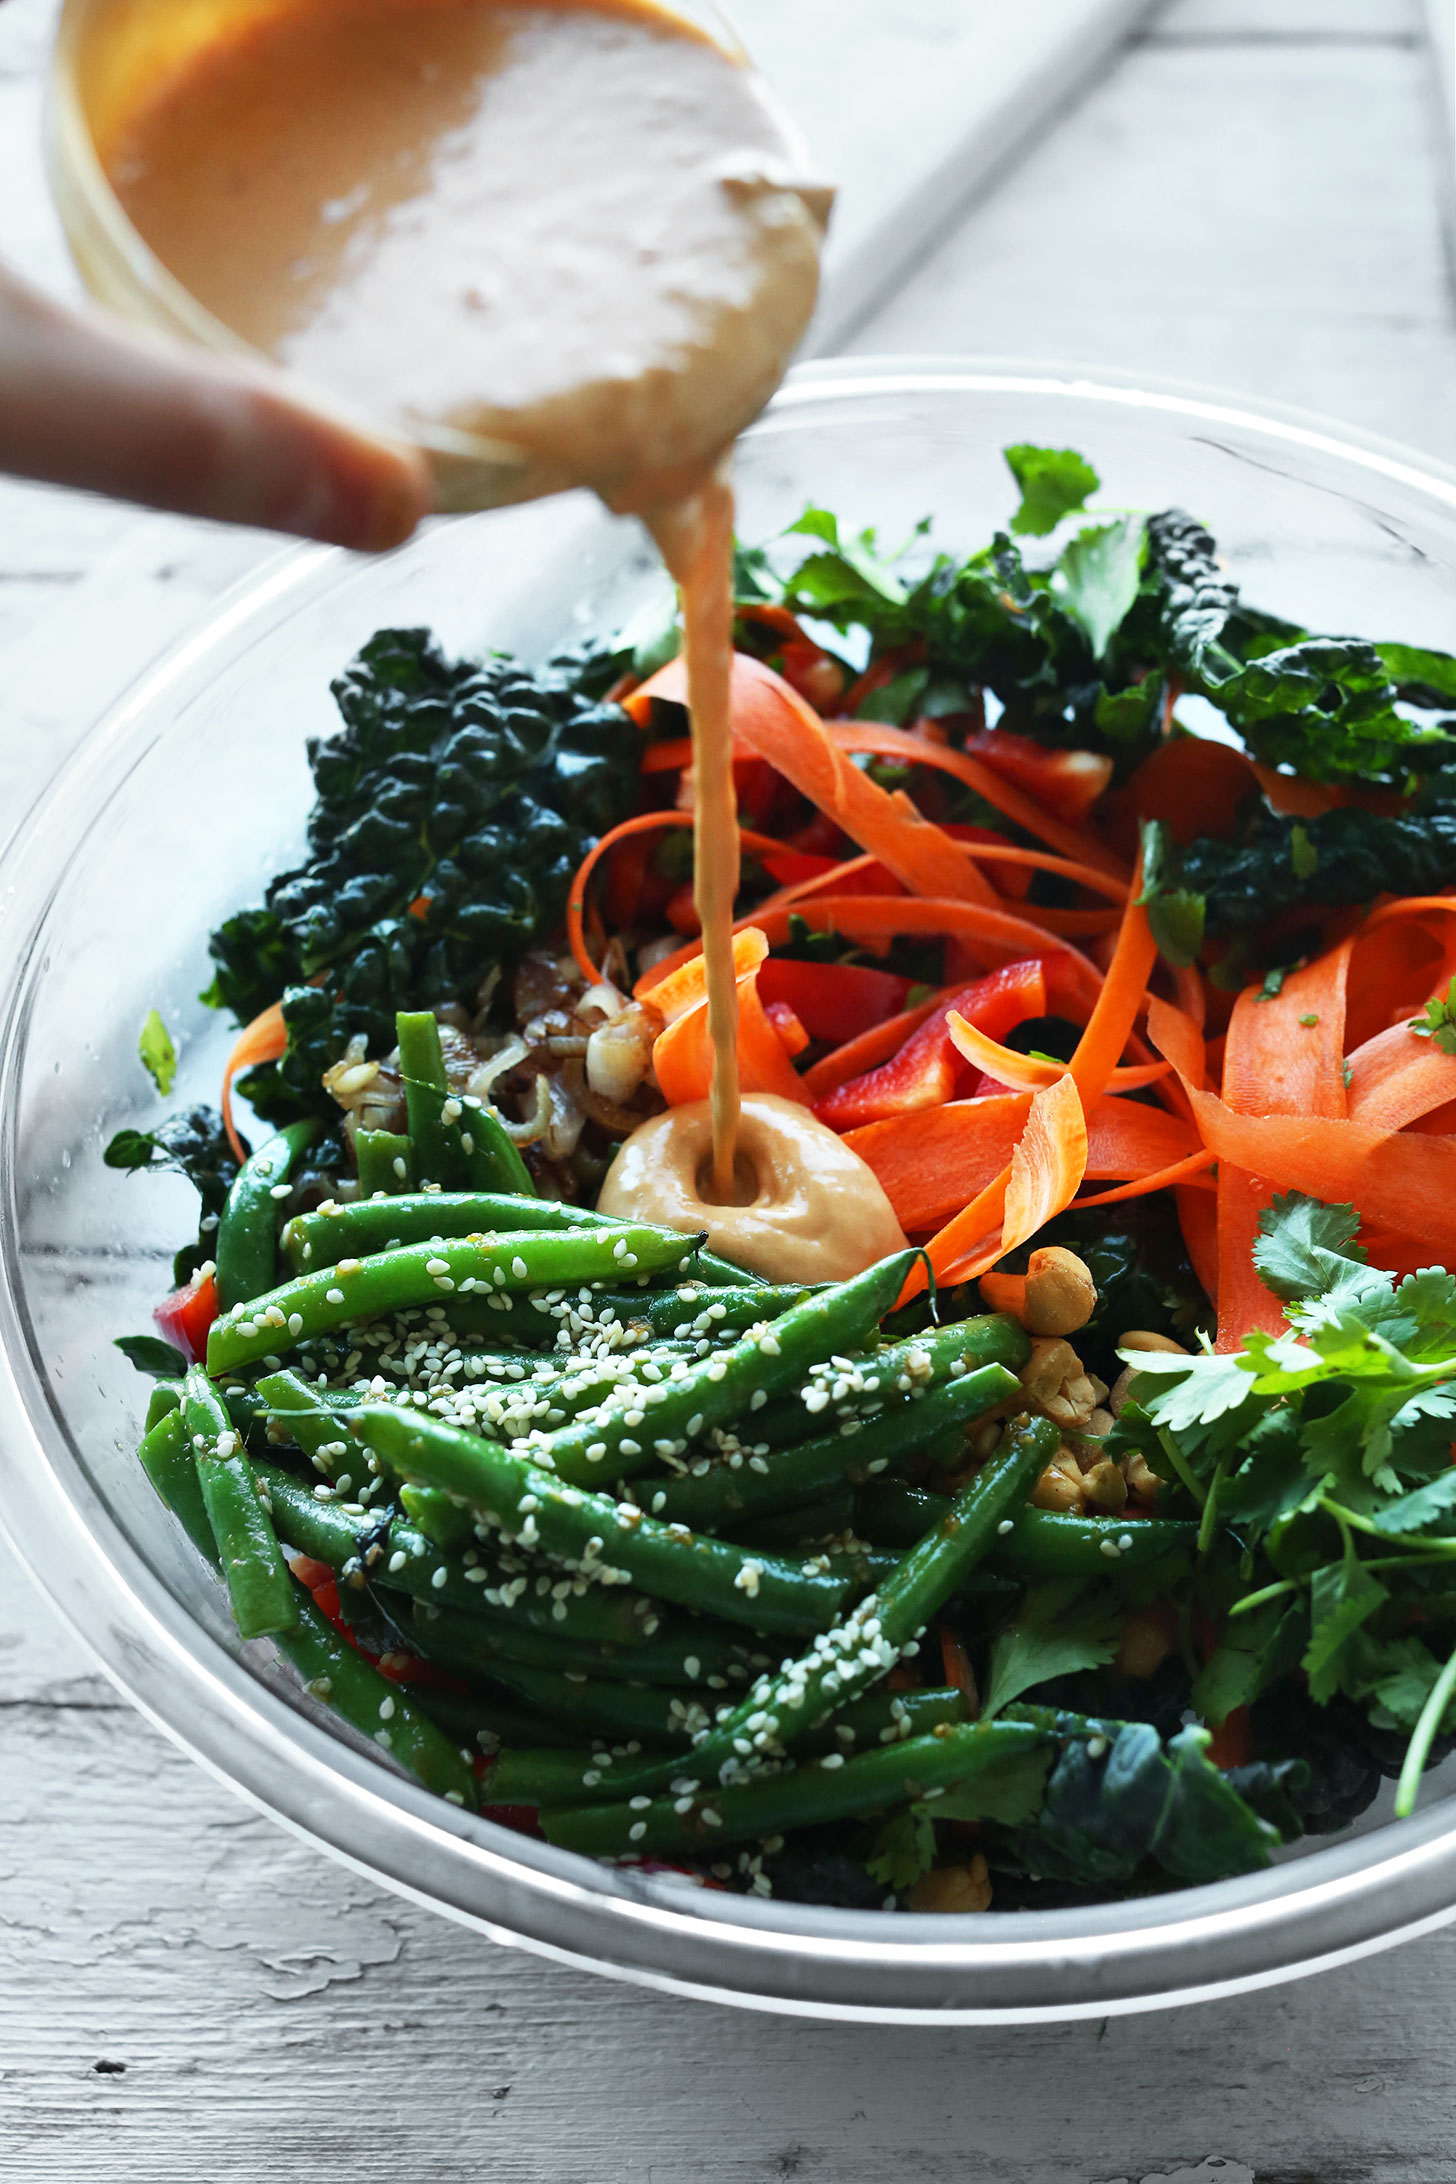 Pouring homemade gingery Cashew Dressing onto our Thai Kale Salad recipe